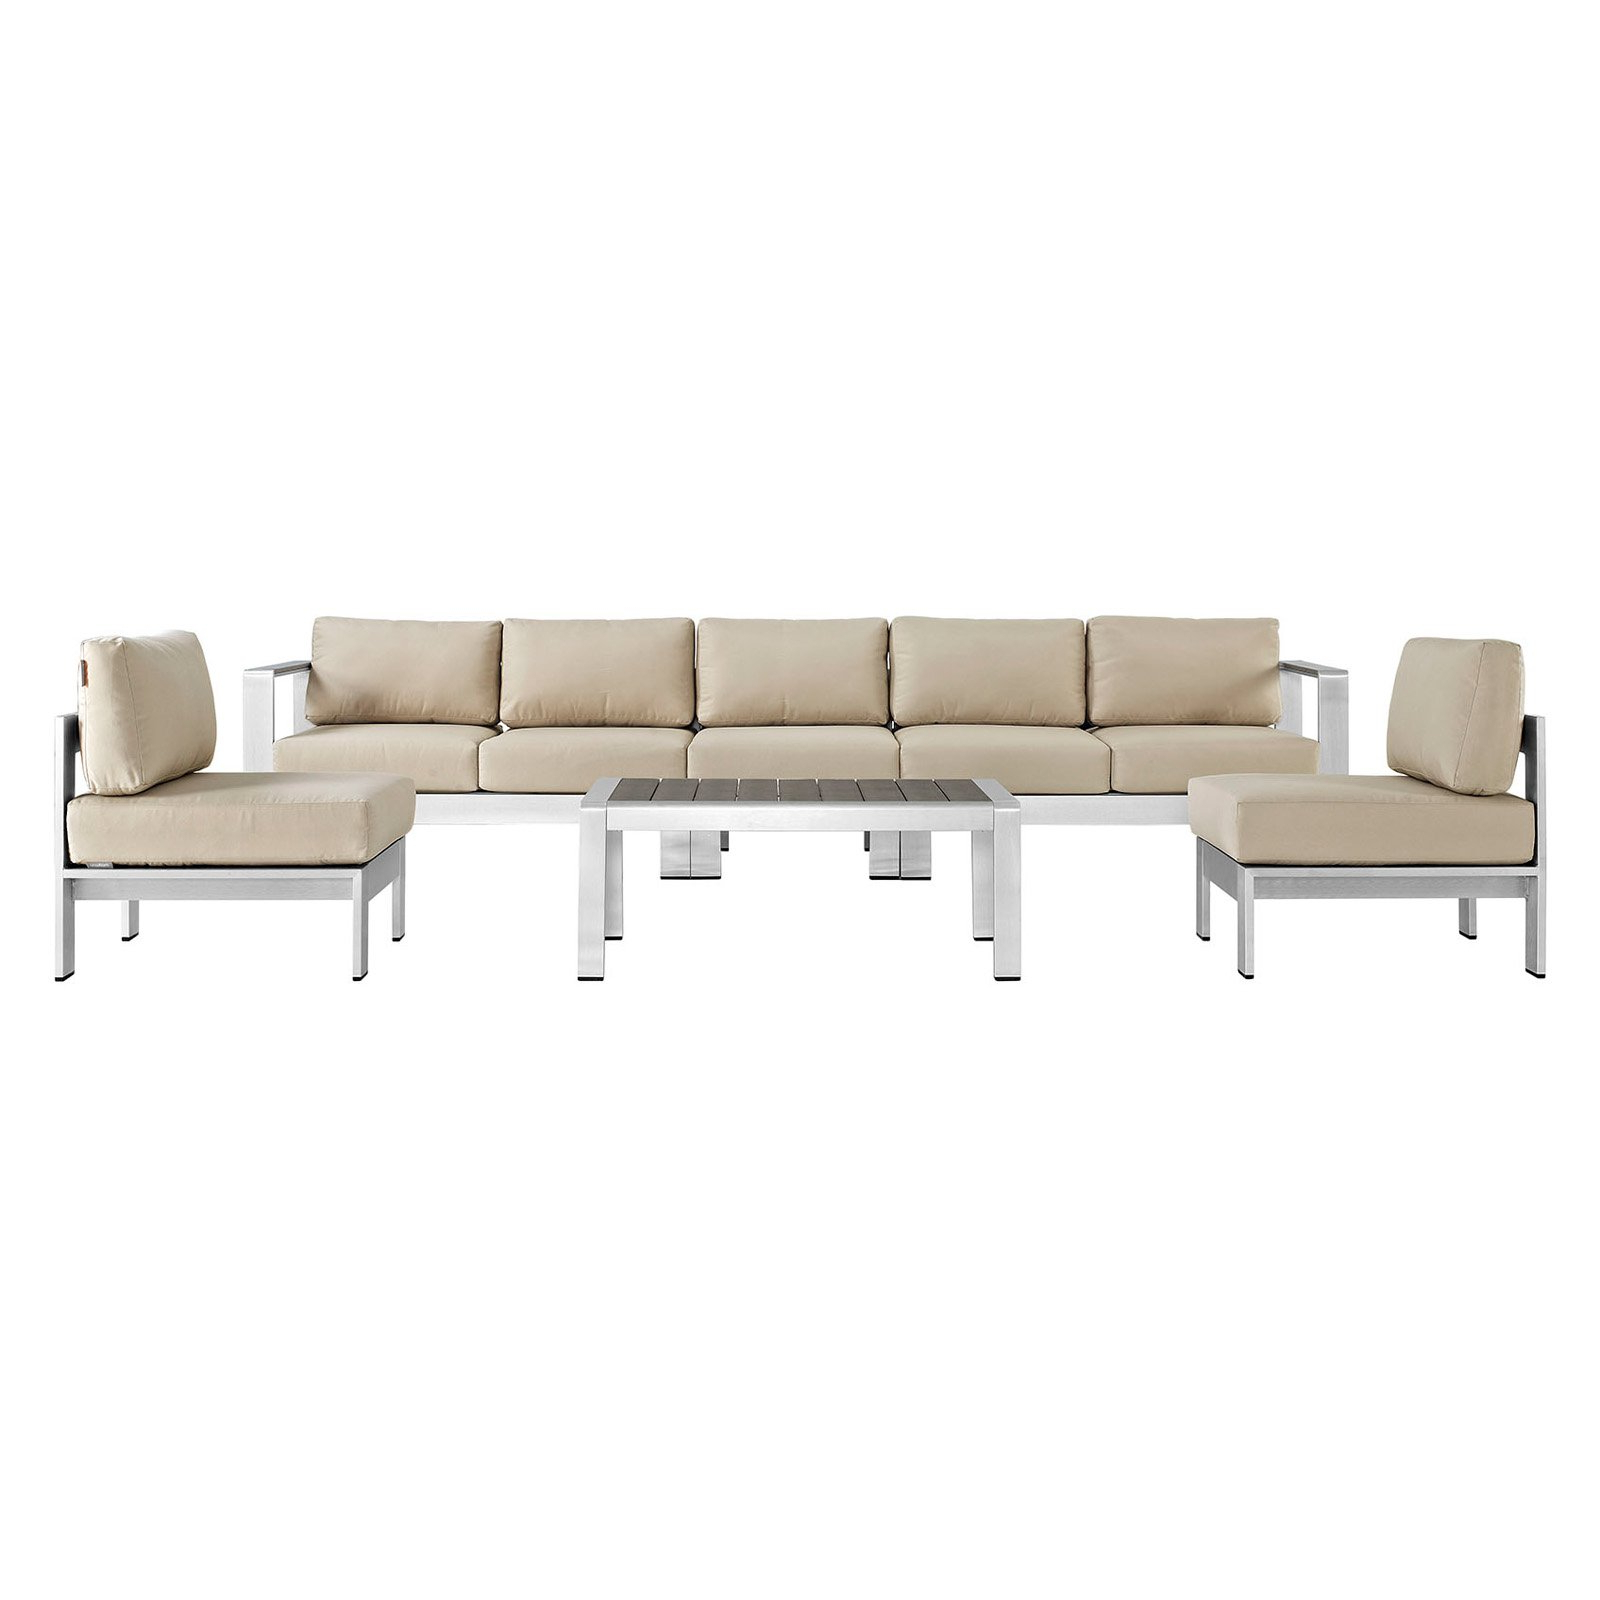 Hursey Patio Sectionals Regarding Most Up To Date Outdoor Modway Shore Aluminum 6 Piece Patio Sectional Sofa (View 13 of 20)